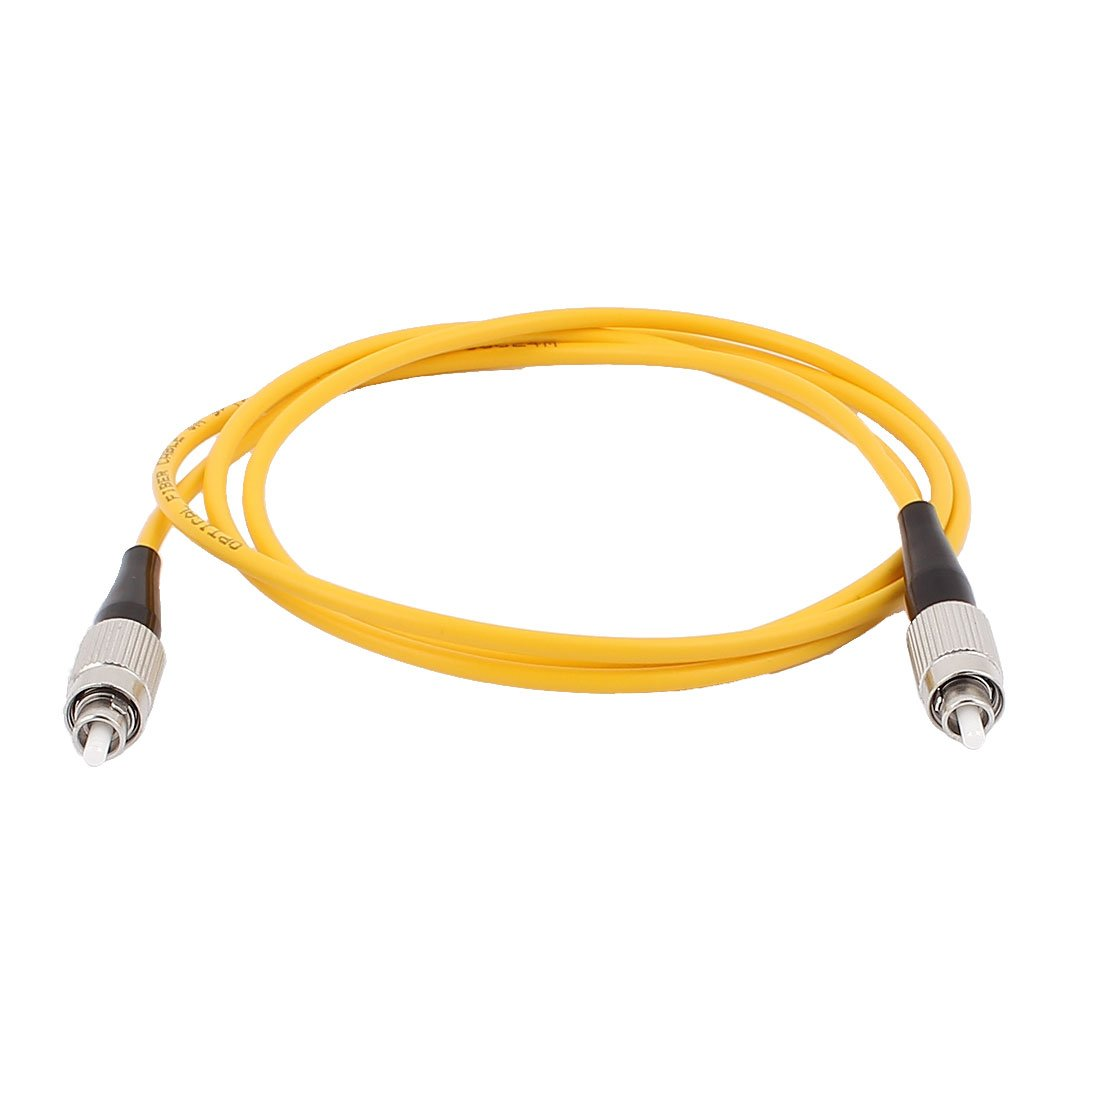 sourcingmap® 1M Single-mode Fibre Jumper Wire FC-FC Optical Fiber Patch Cable SM SX a15111200ux0099